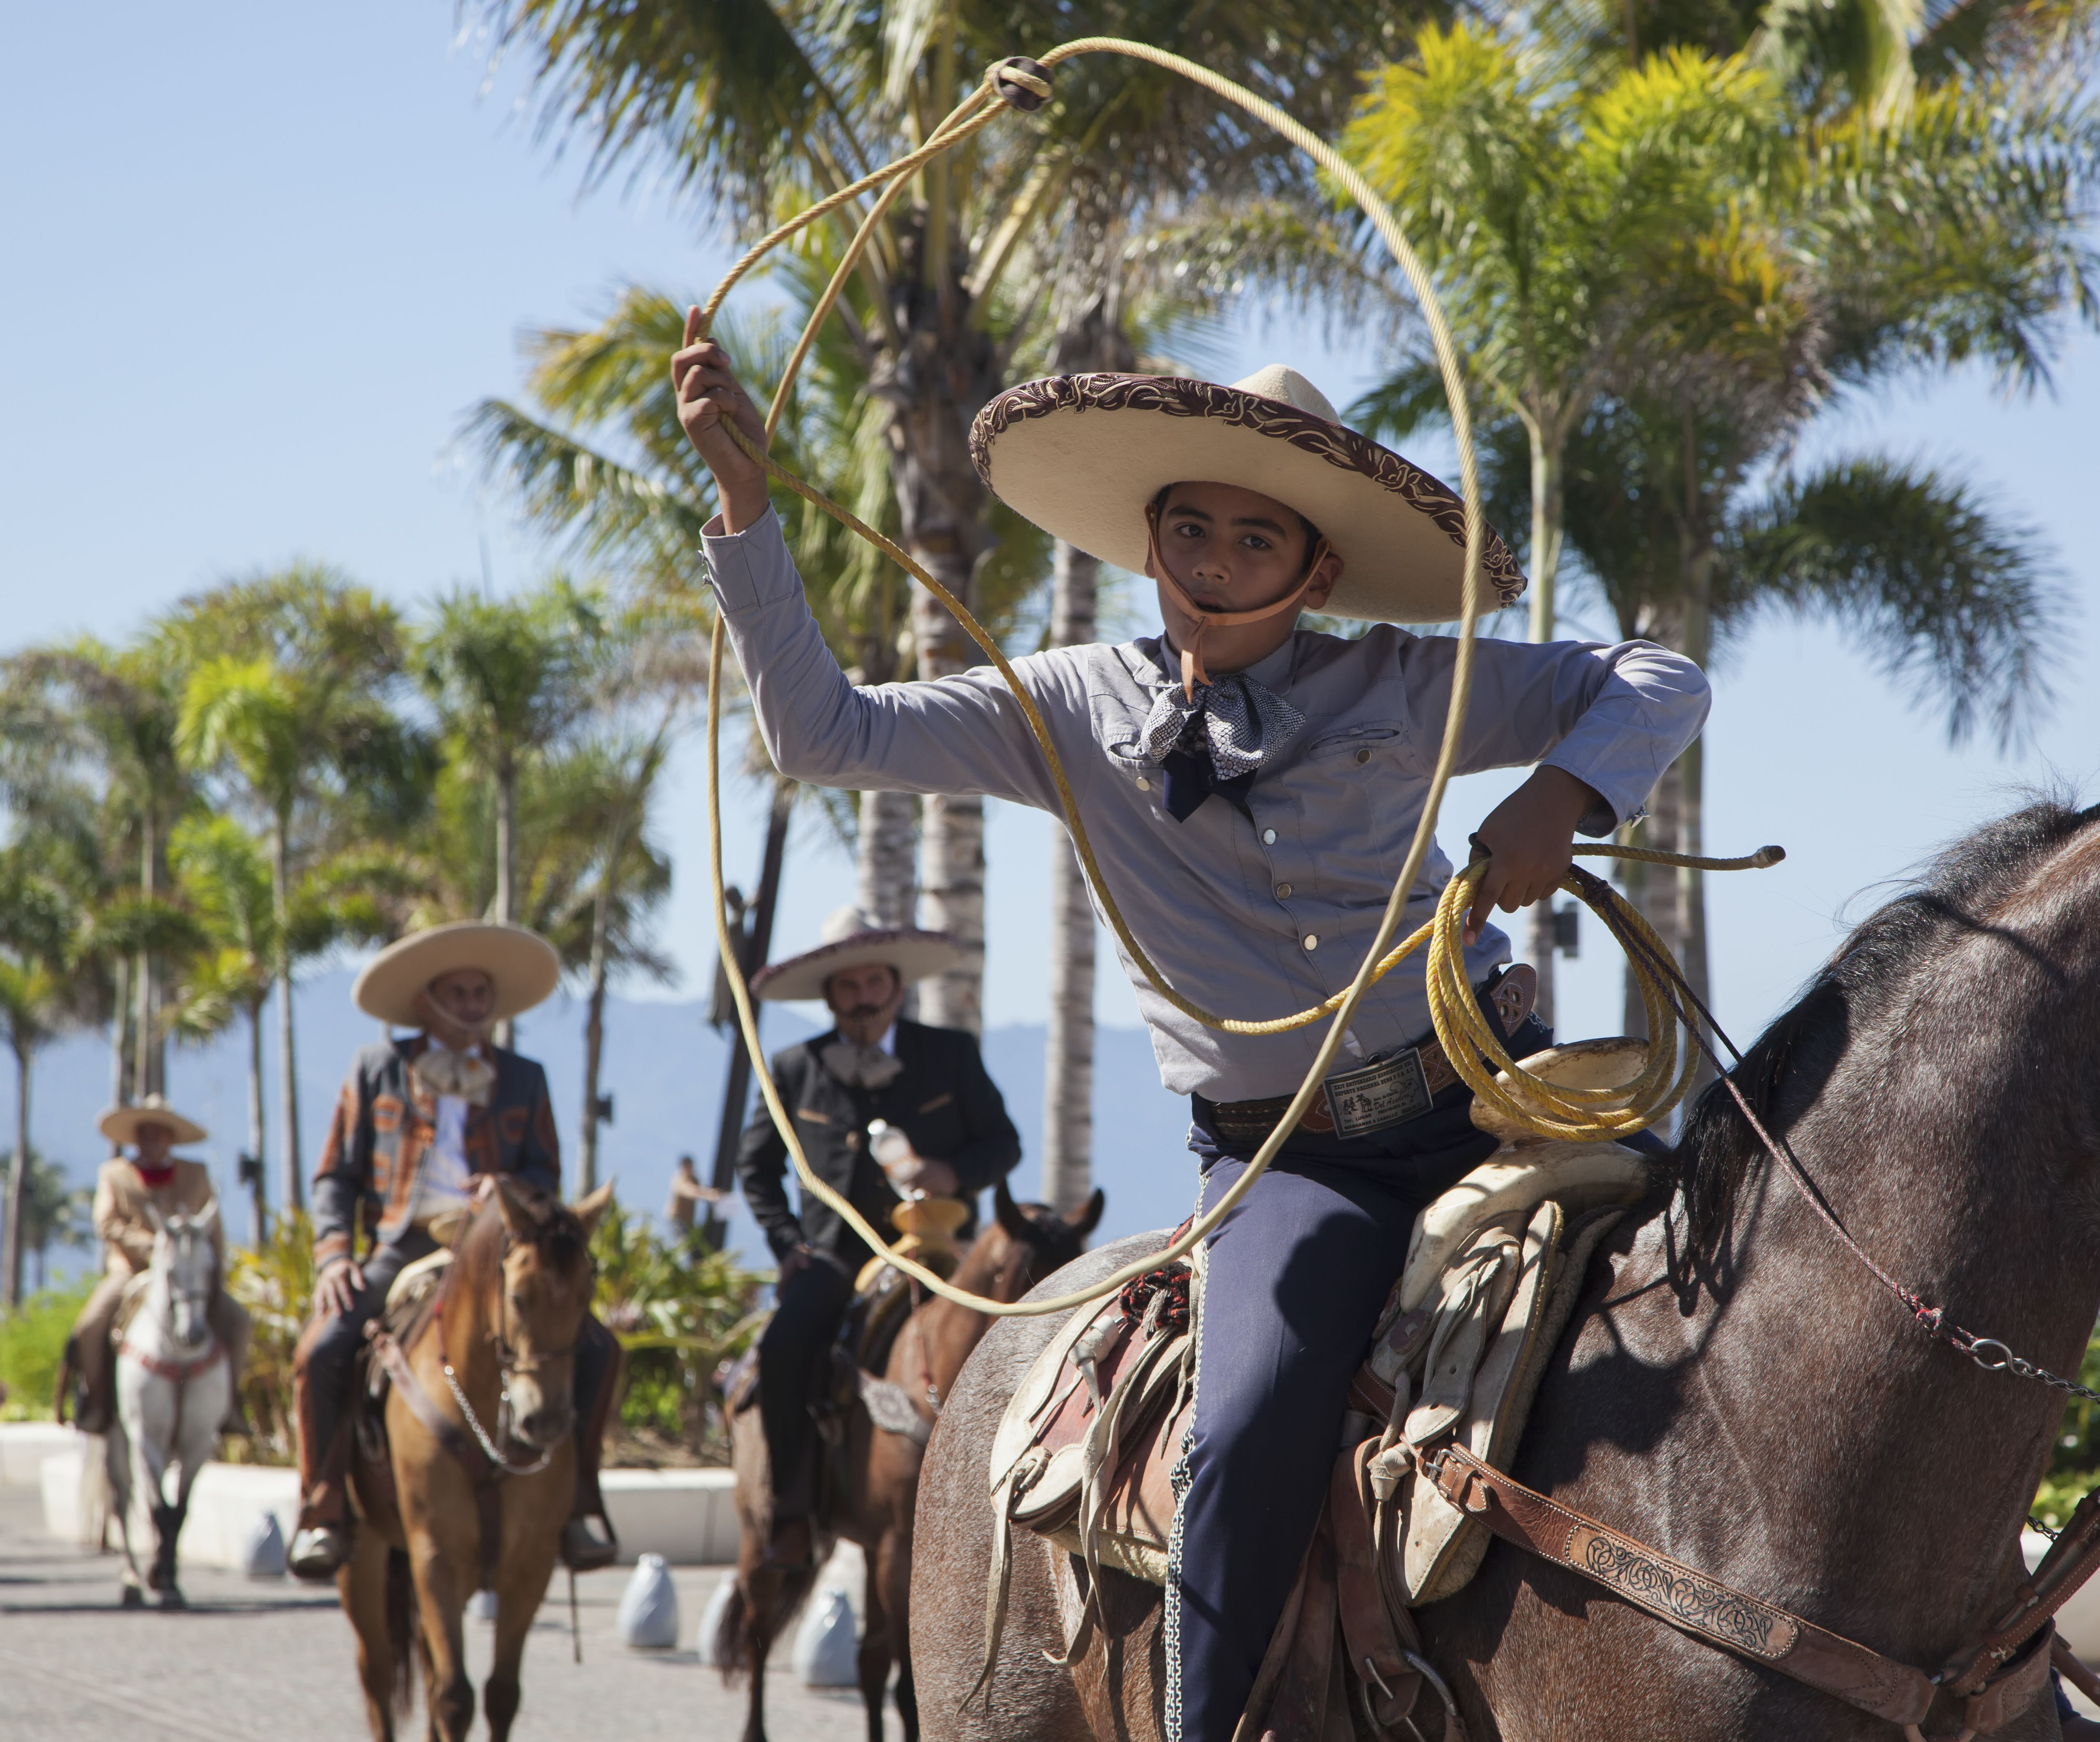 Mexican rodeo and parade in Puerto Vallarta, Mexico